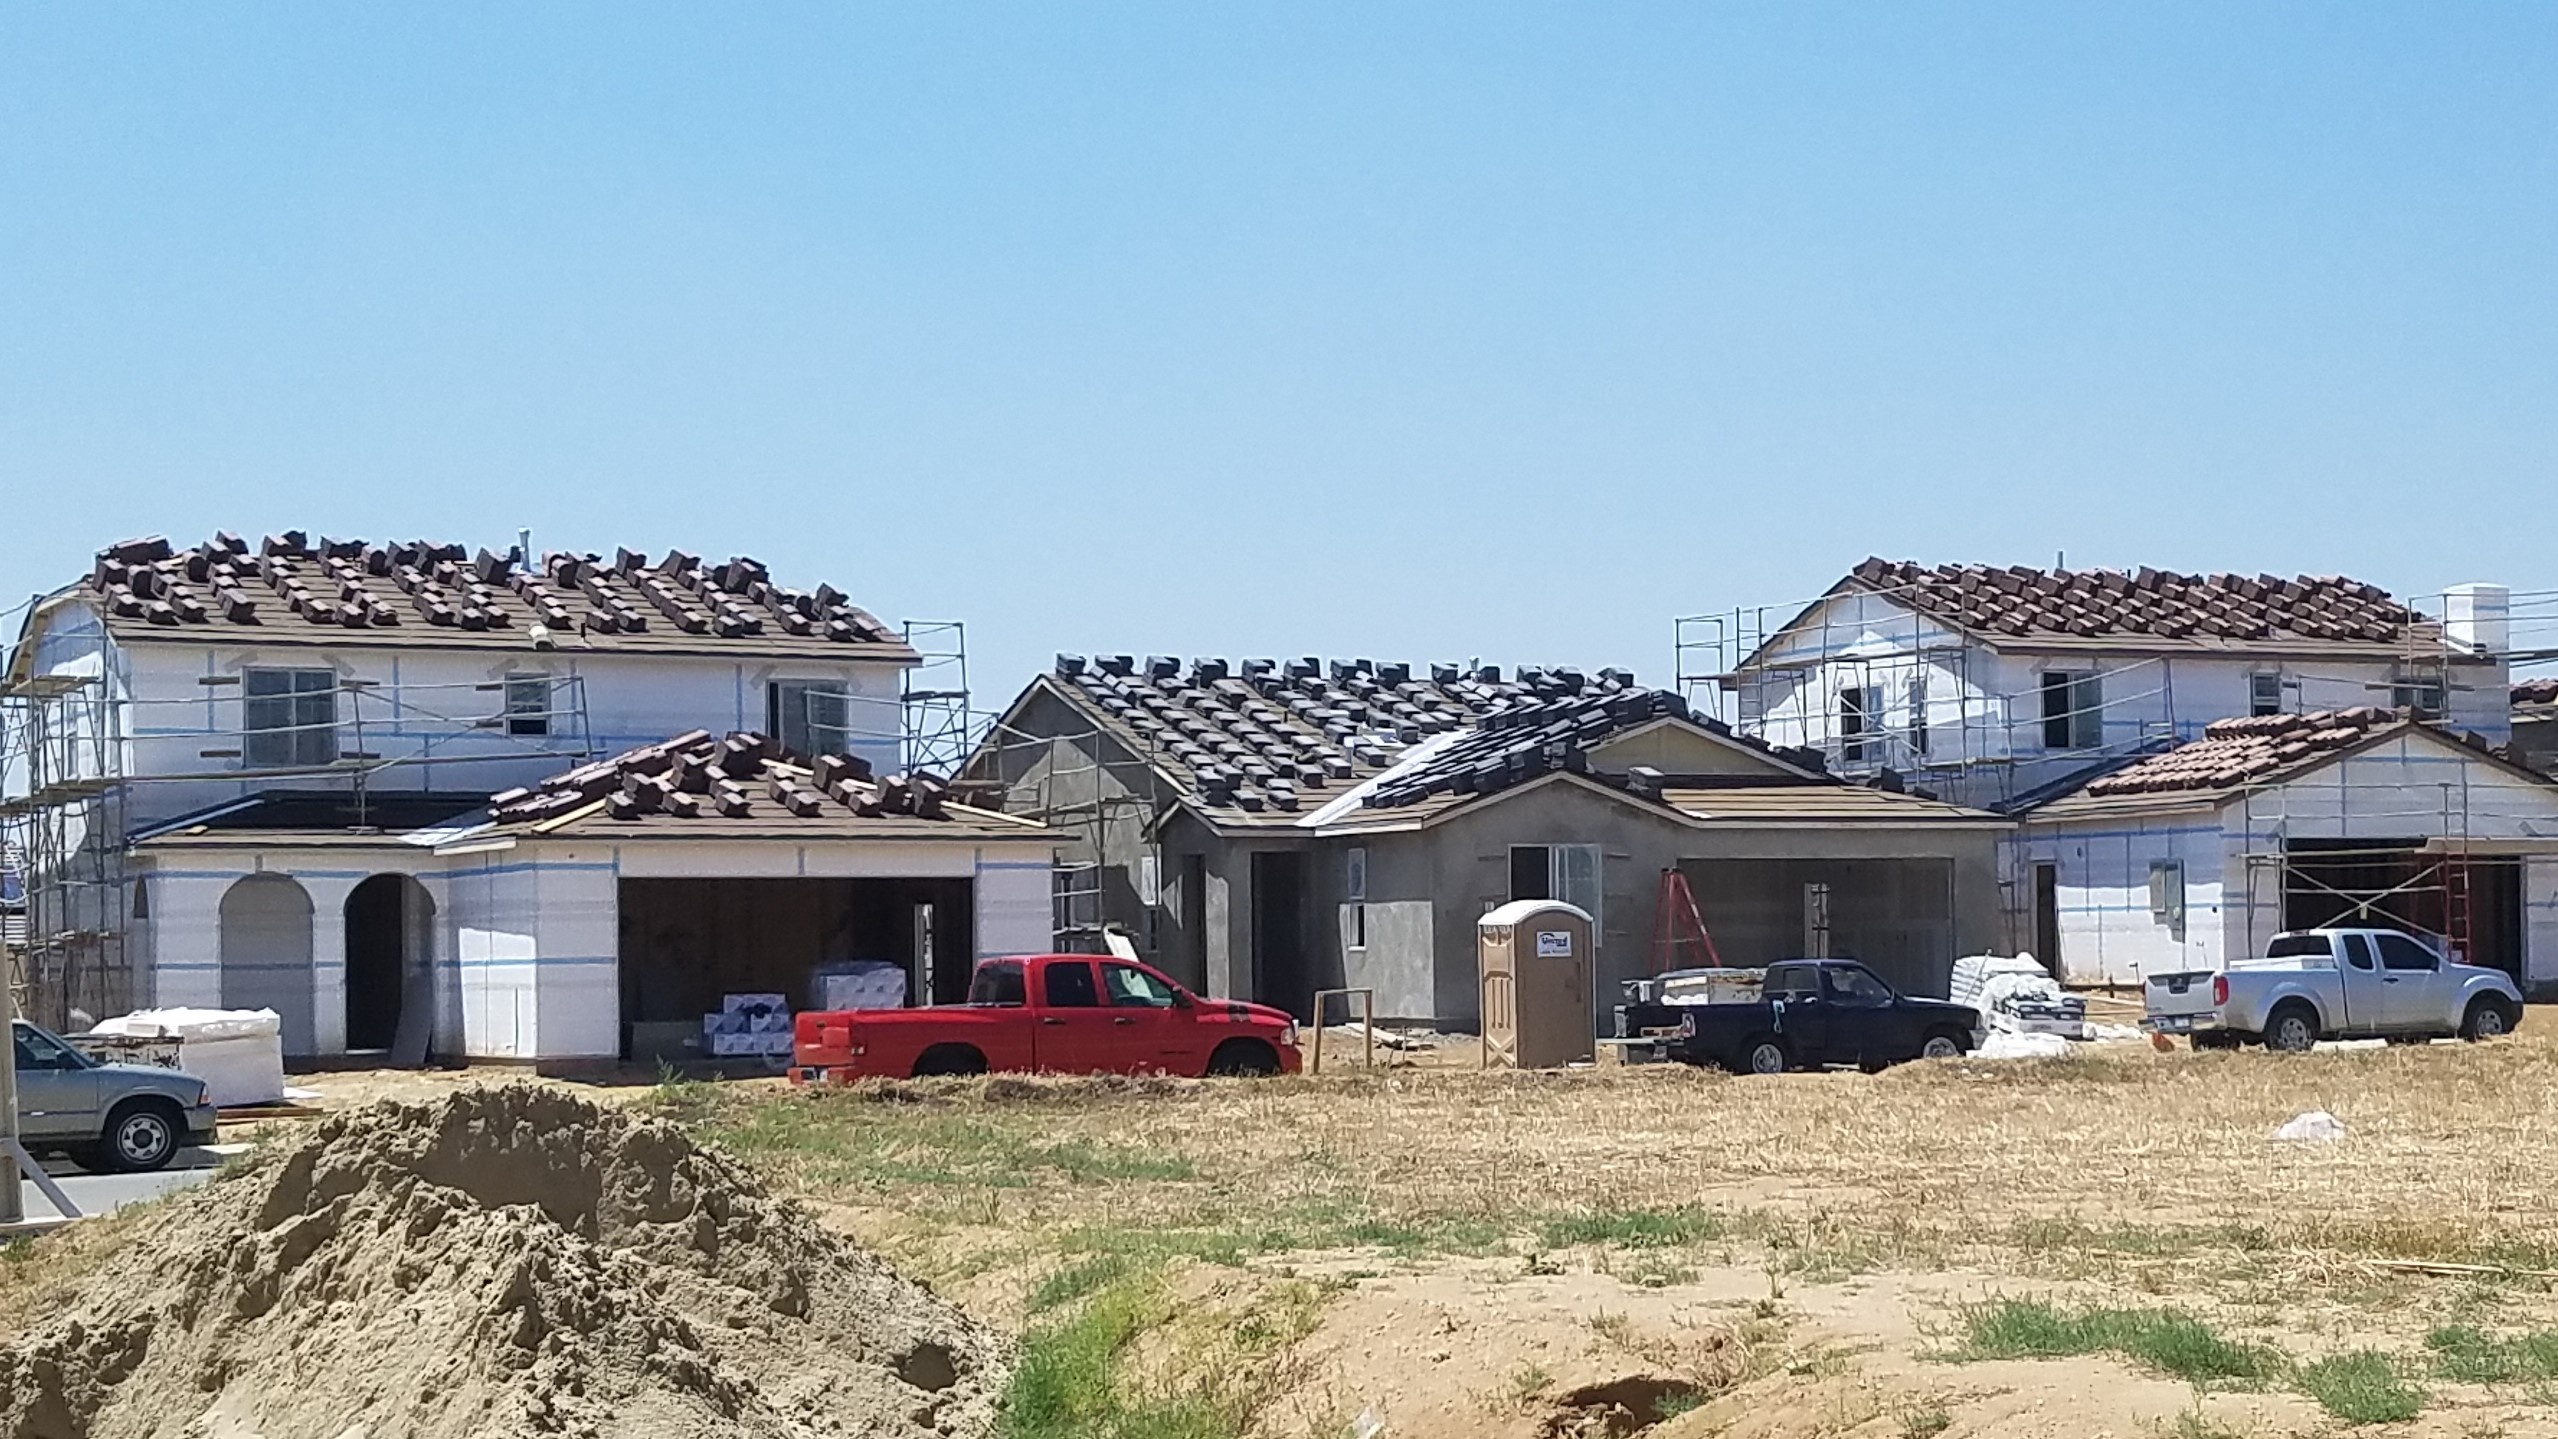 Construction in Beaumont, California